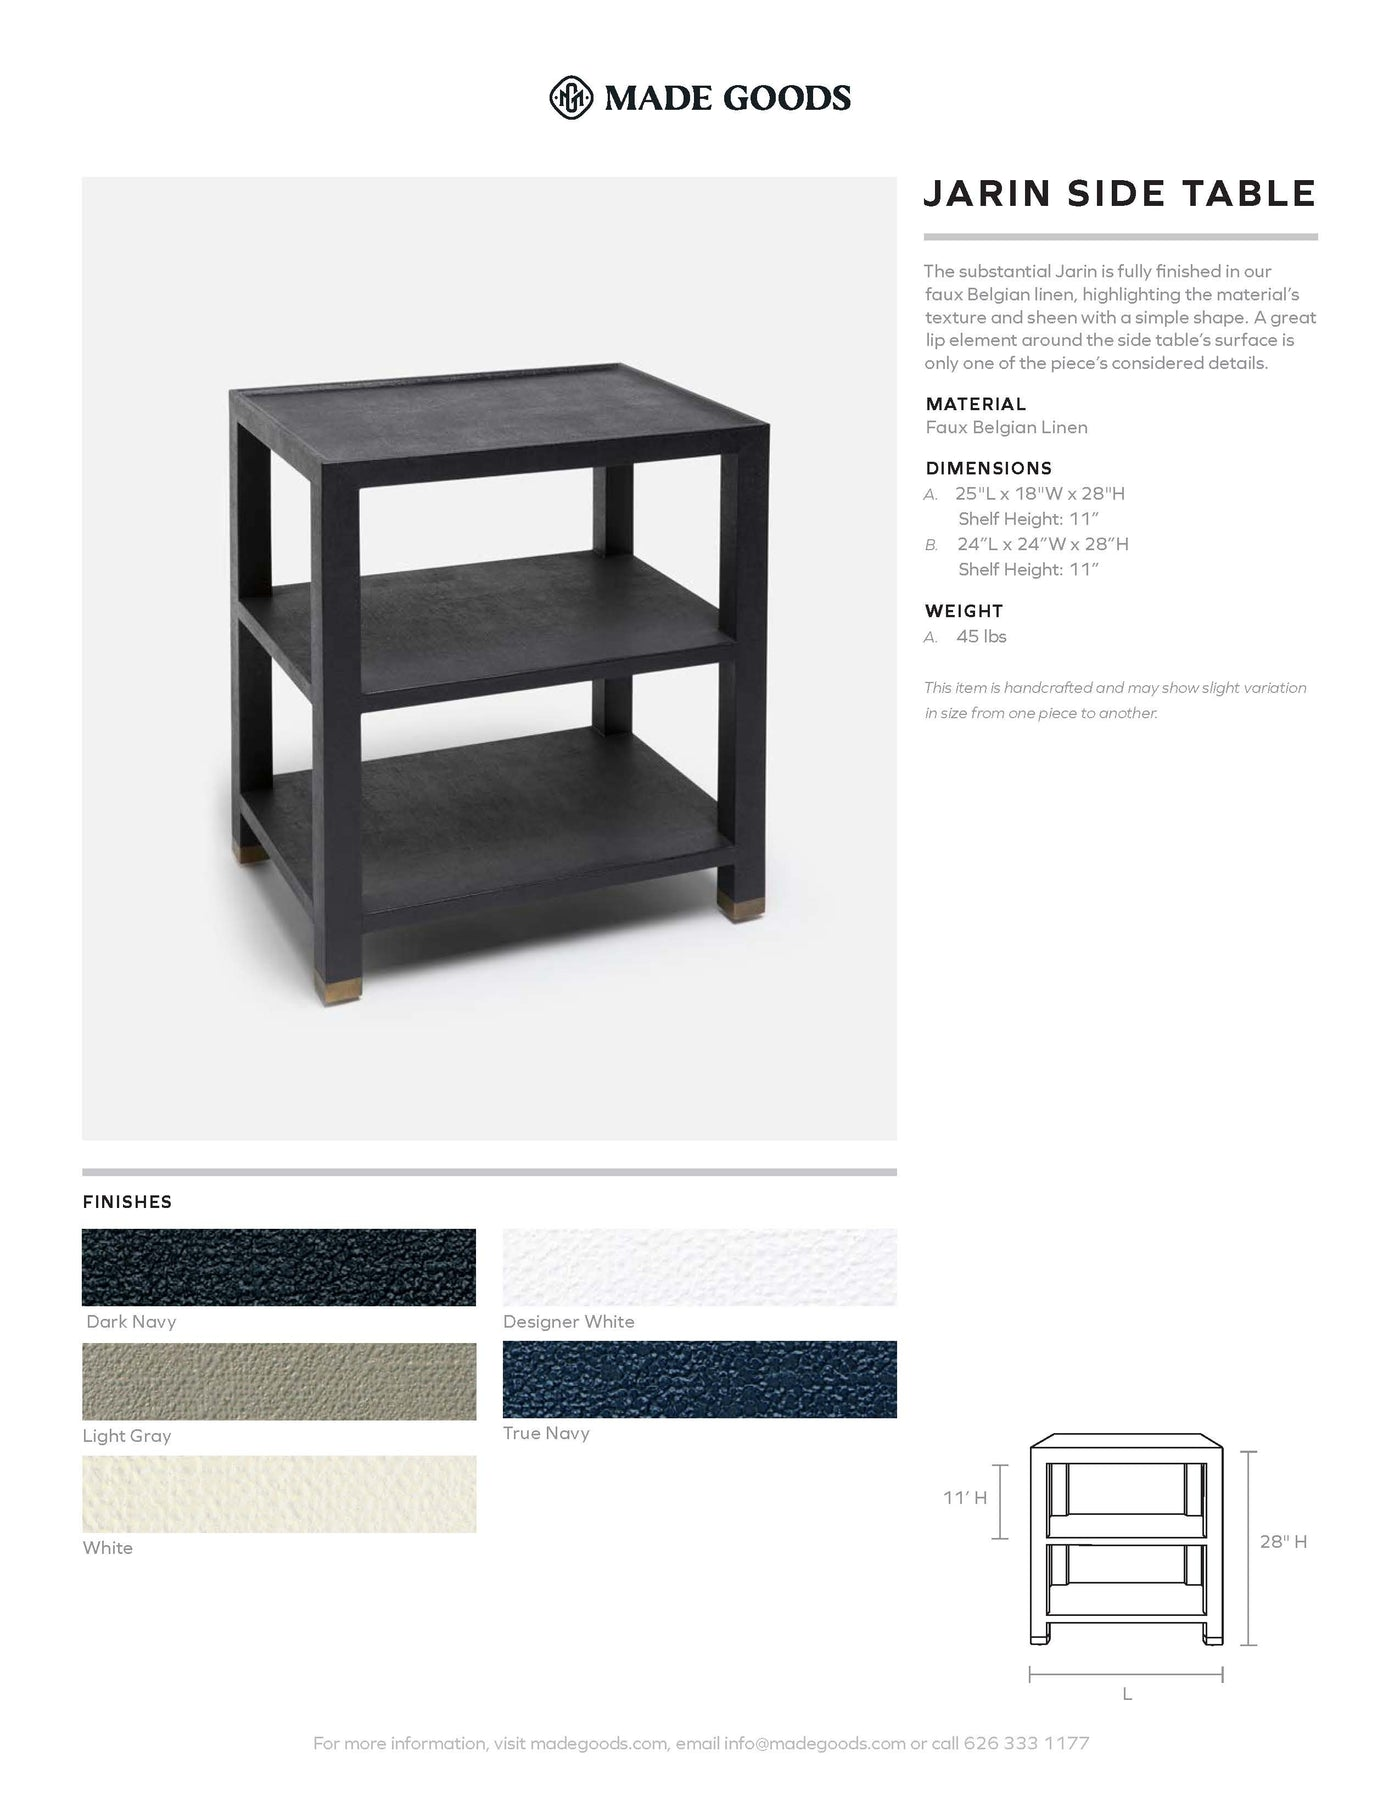 Made Goods Jarin Side Table Tearsheet